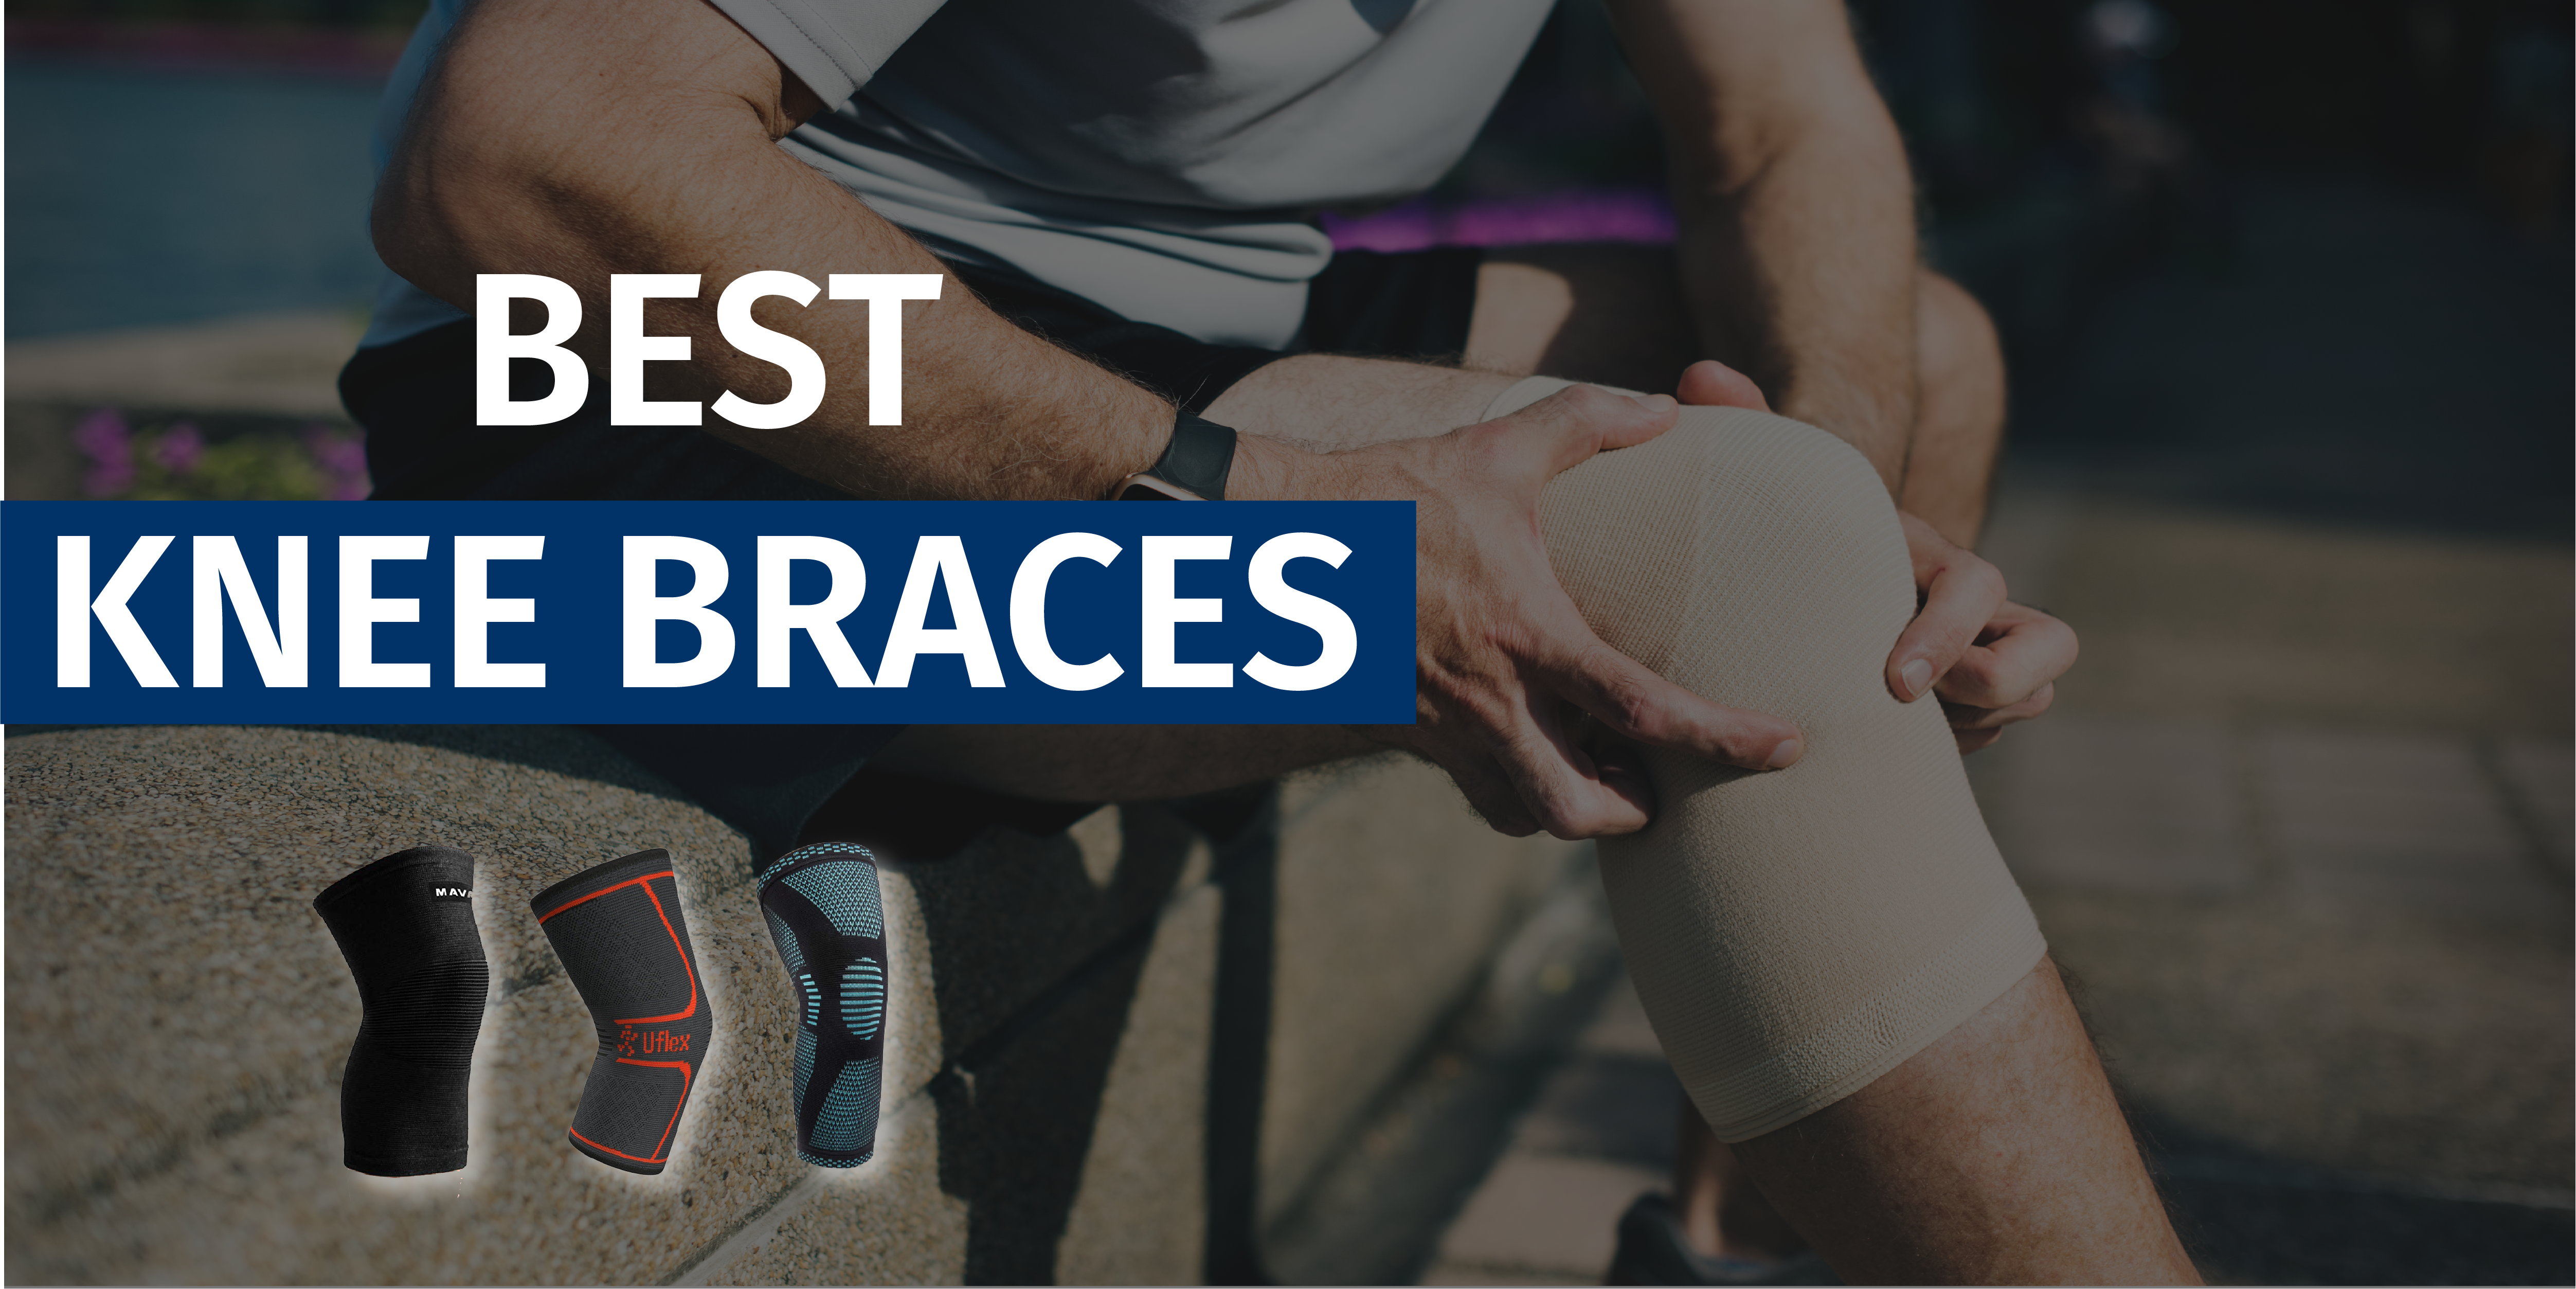 Best Knee Braces for Featured Image